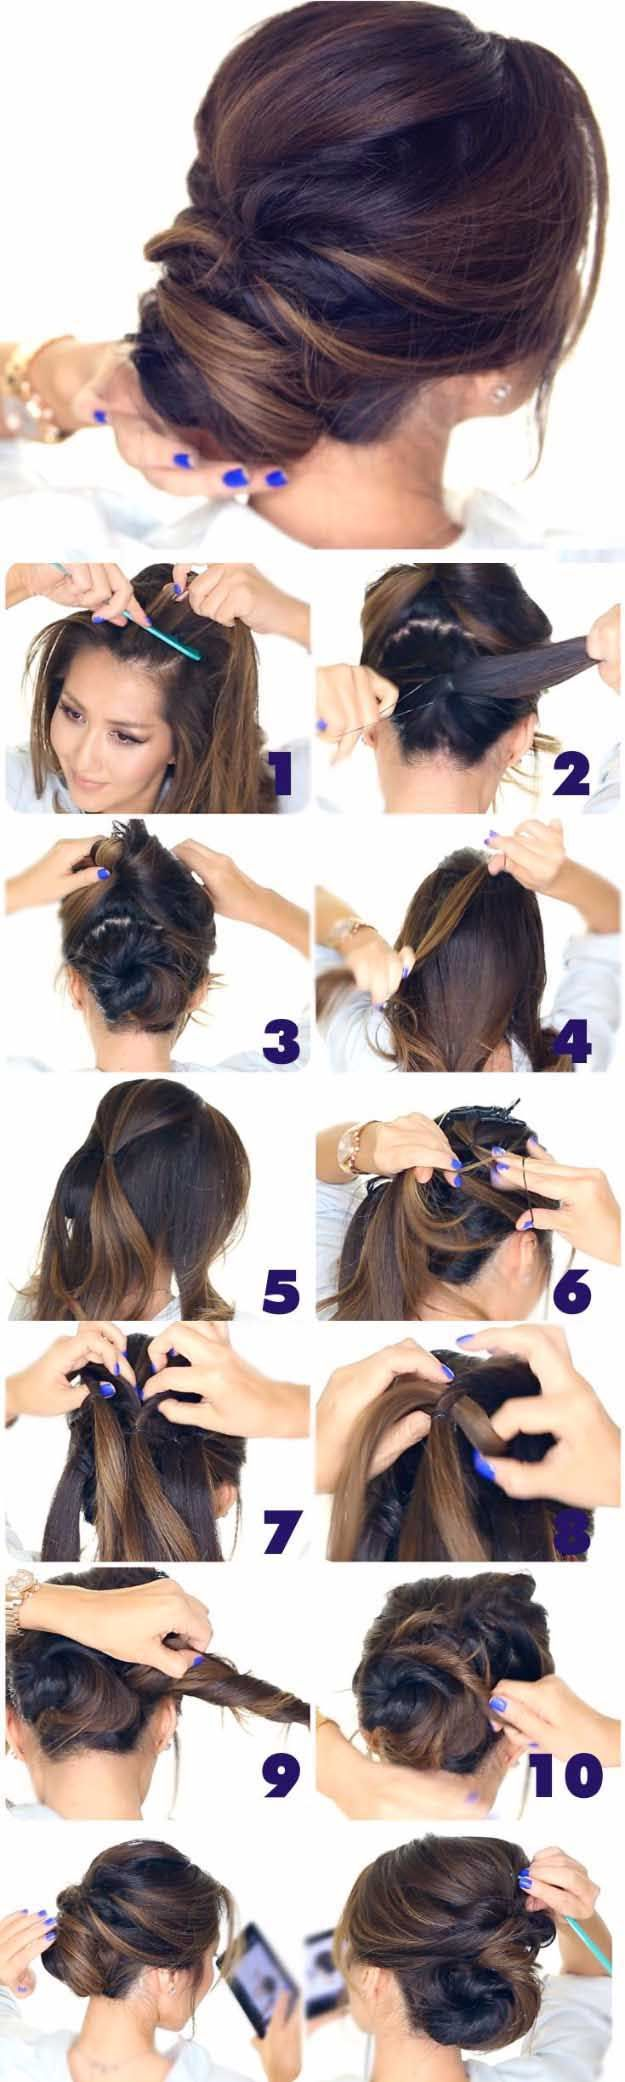 best hairstyles for brides short curls amazing hair and chignons